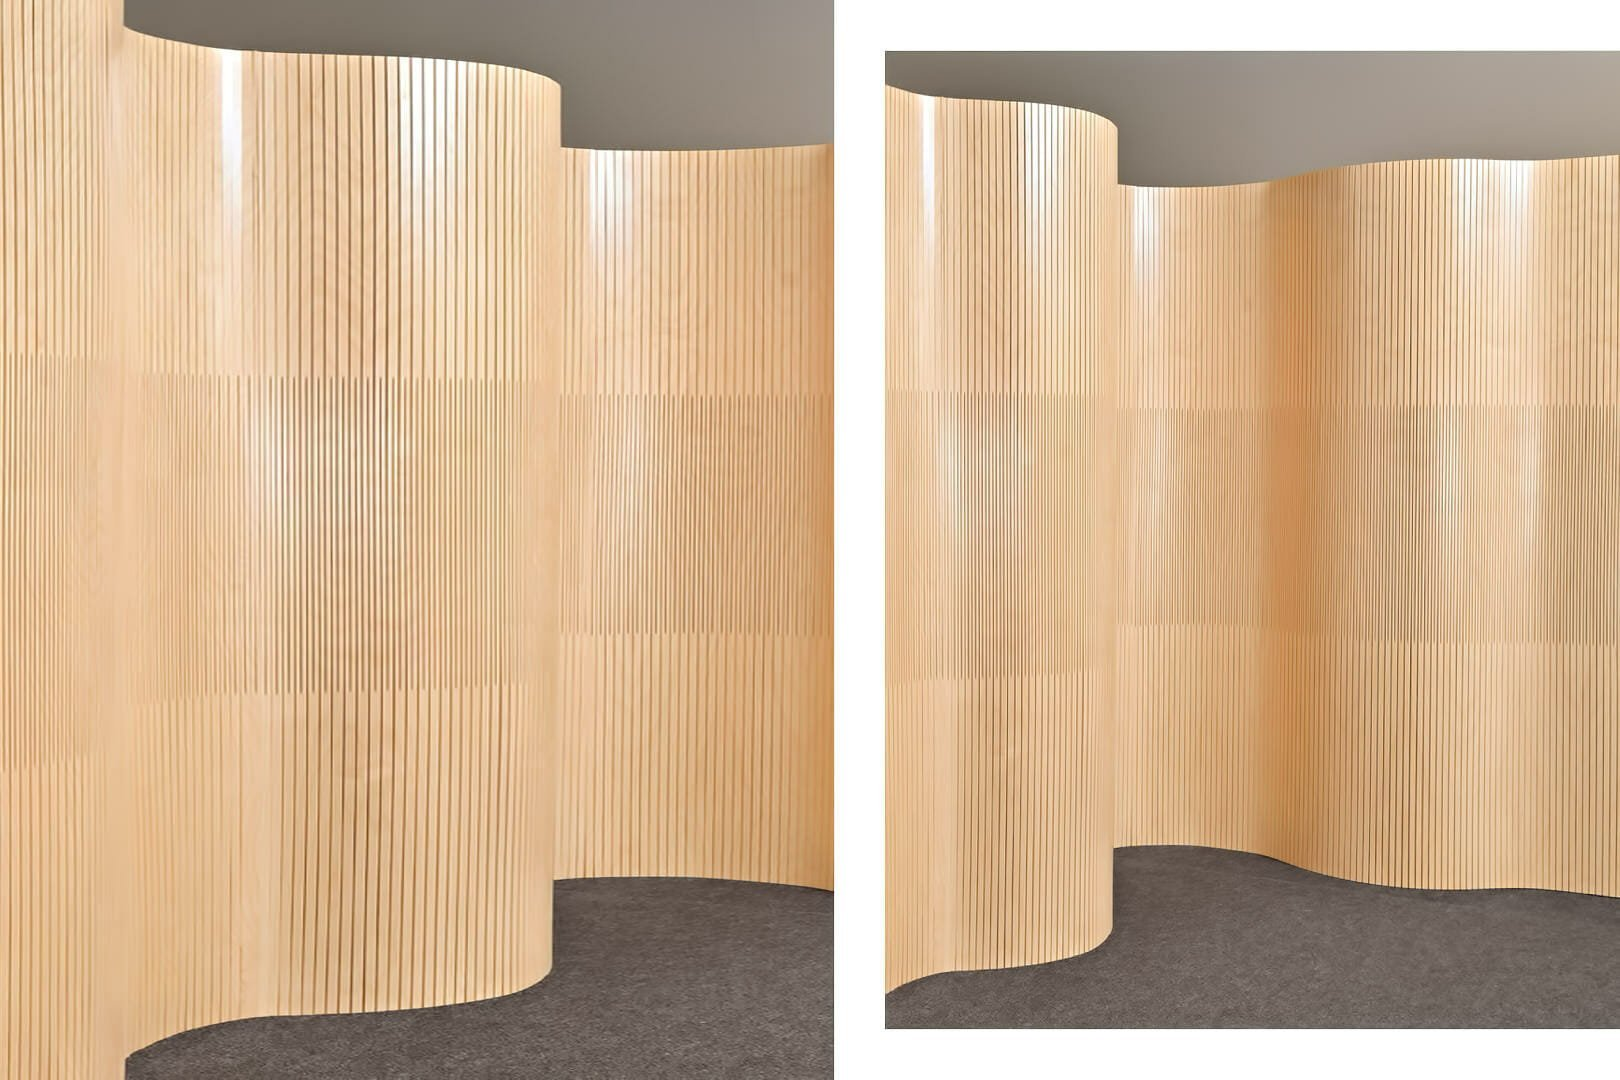 curve-wall-wood-architectatwork-01